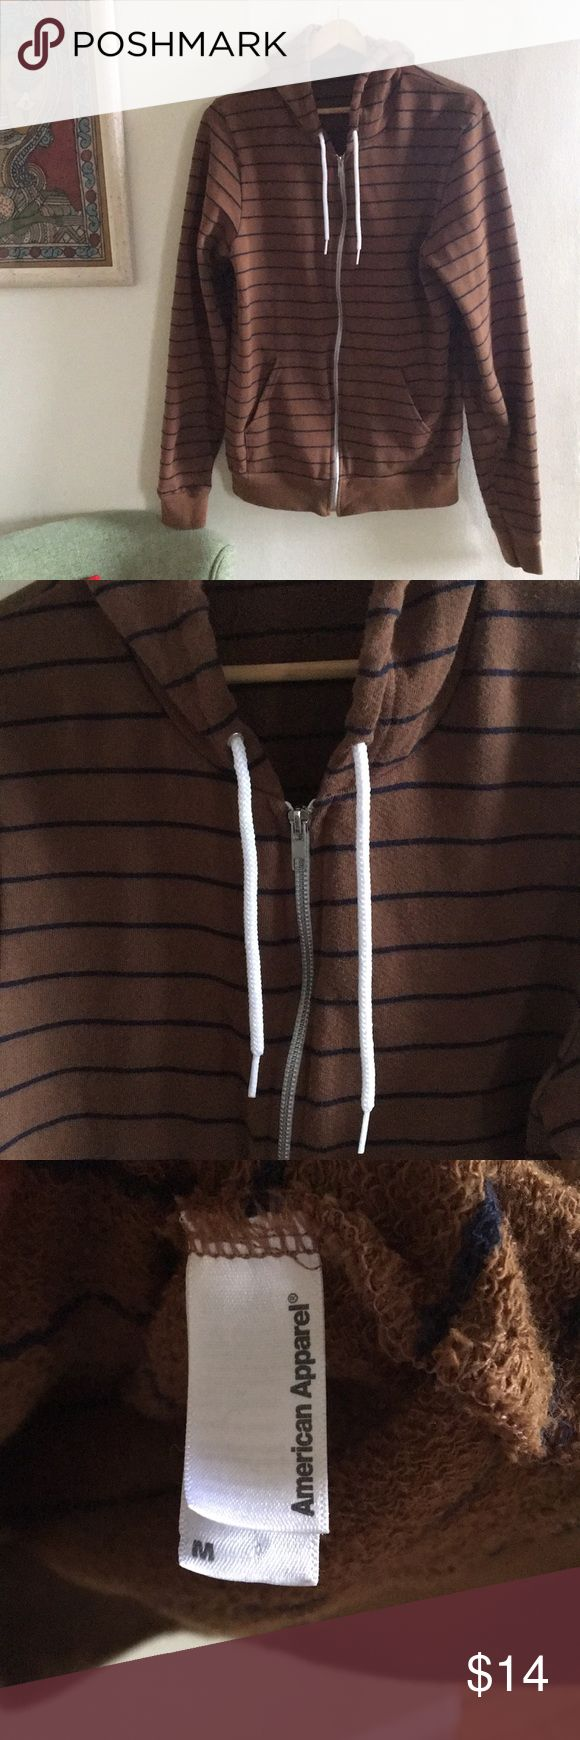 American apparel striped zip up - unisex M I think technically it's a men's M, but I'm a size small and wore it oversized. It's quite narrow. Brown and navy blue stripe. Inside has a terry feel. Great condition! American Apparel Shirts Sweatshirts & Hoodies